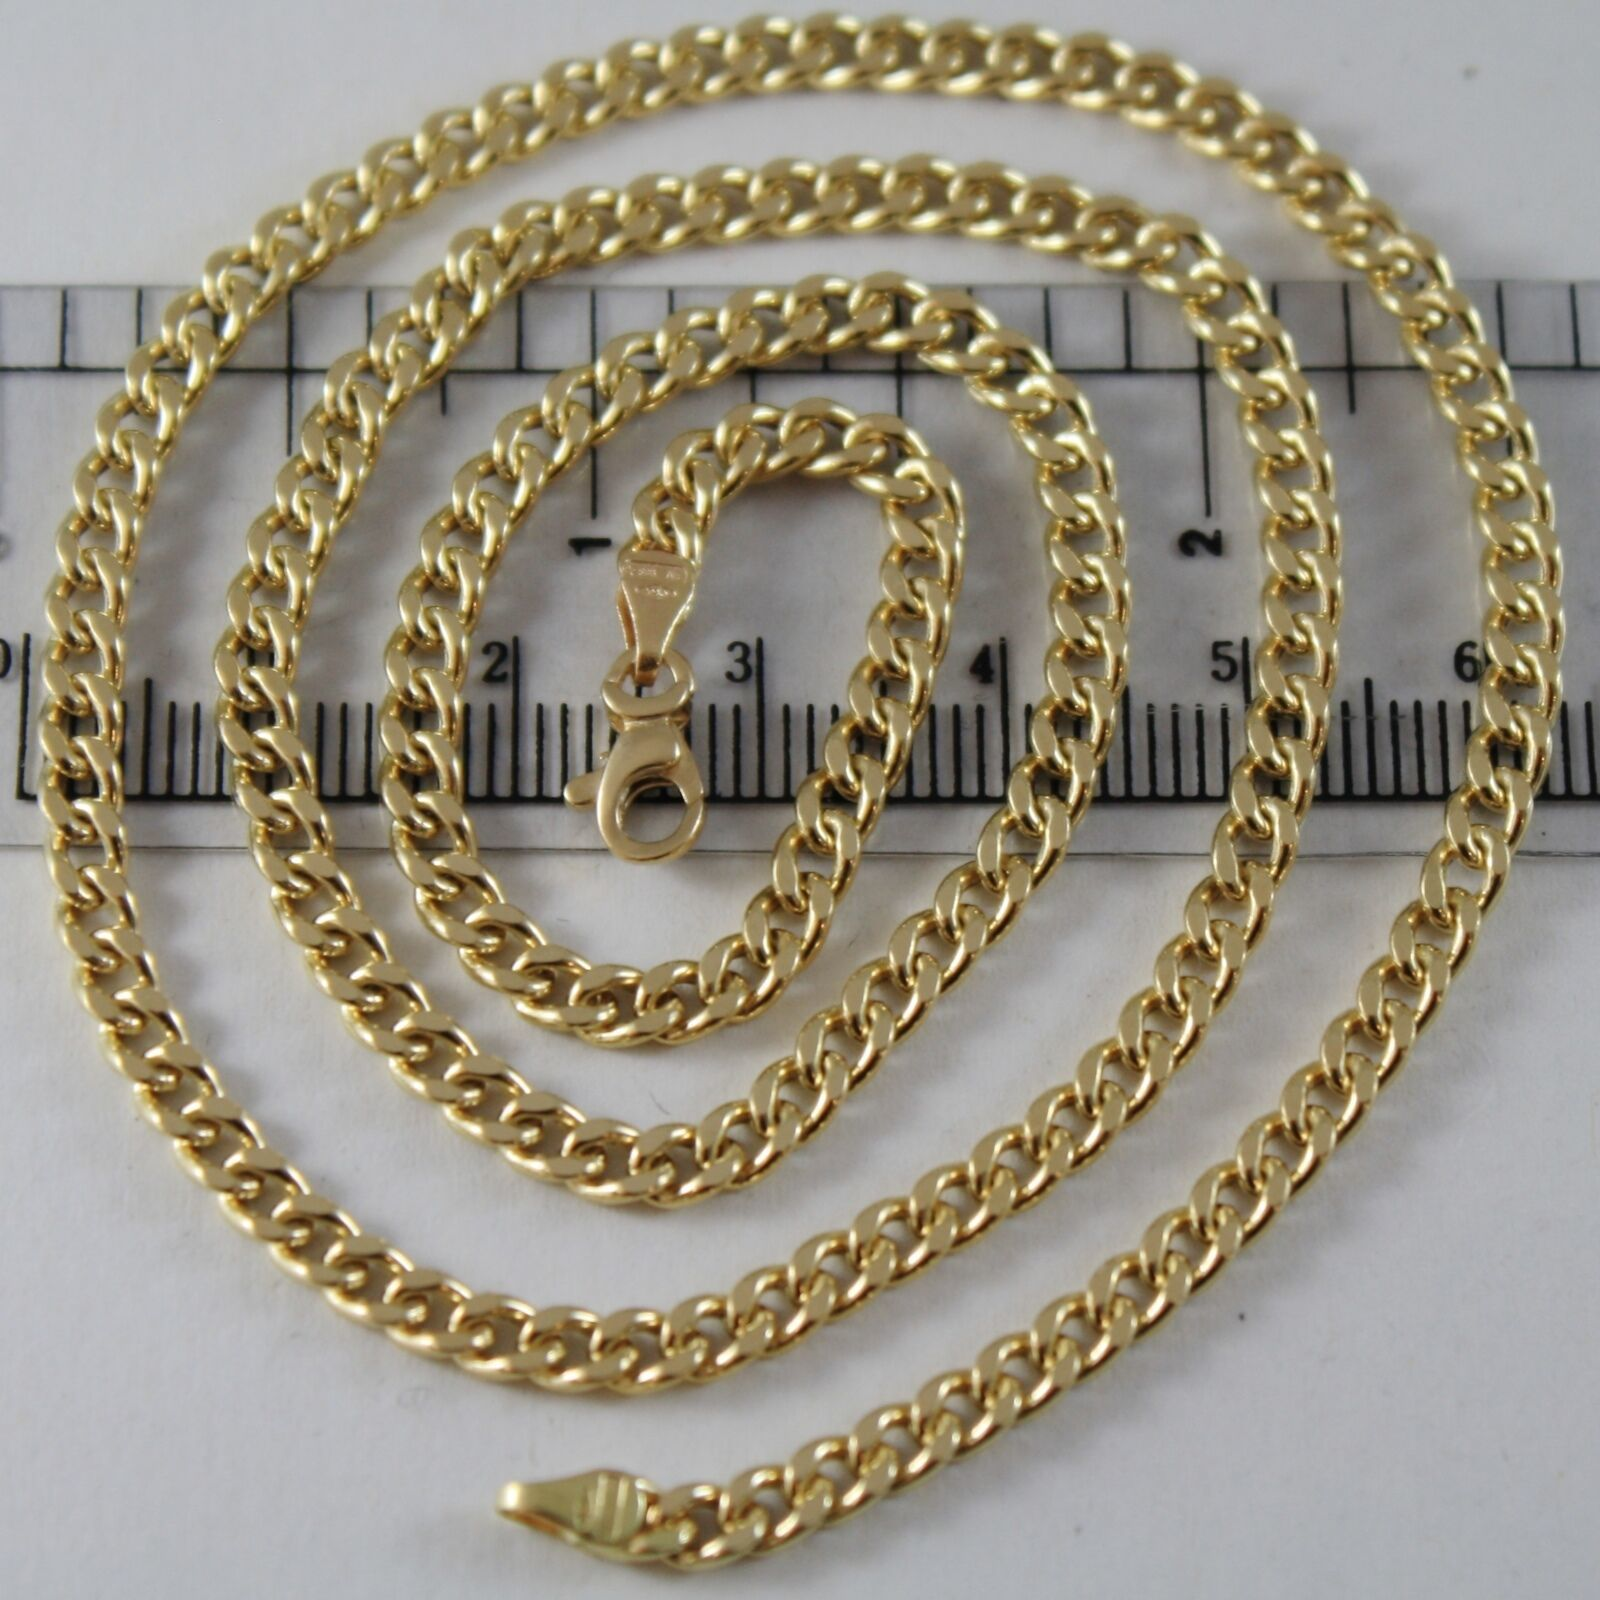 18K YELLOW GOLD CHAIN GRUMETTE GOURMETTE LINK 3 MM, 23.60 INCHES MADE IN ITALY